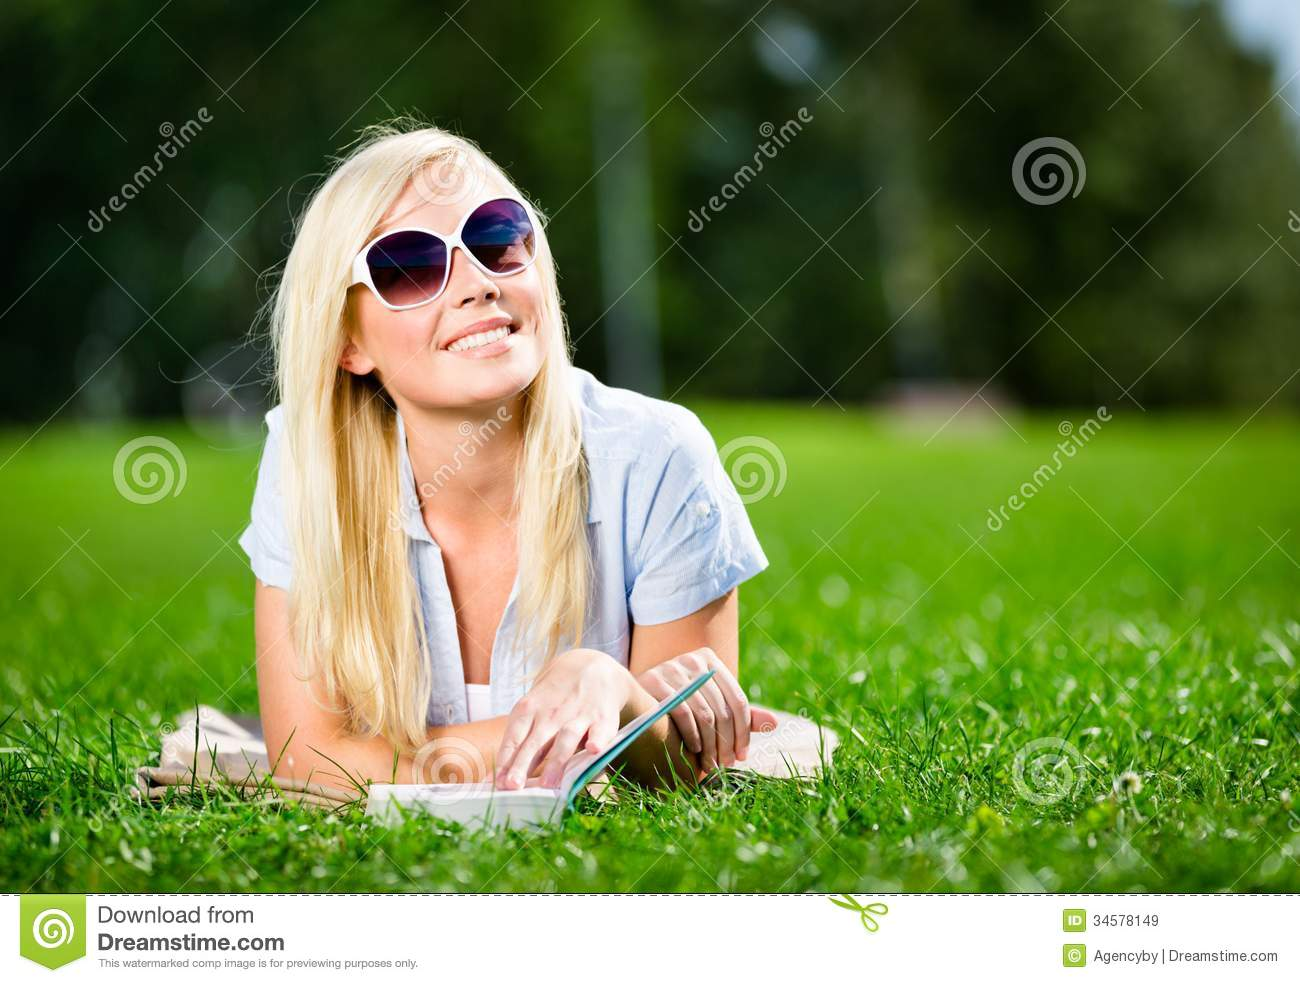 Female student in sunglasses with book on the grass